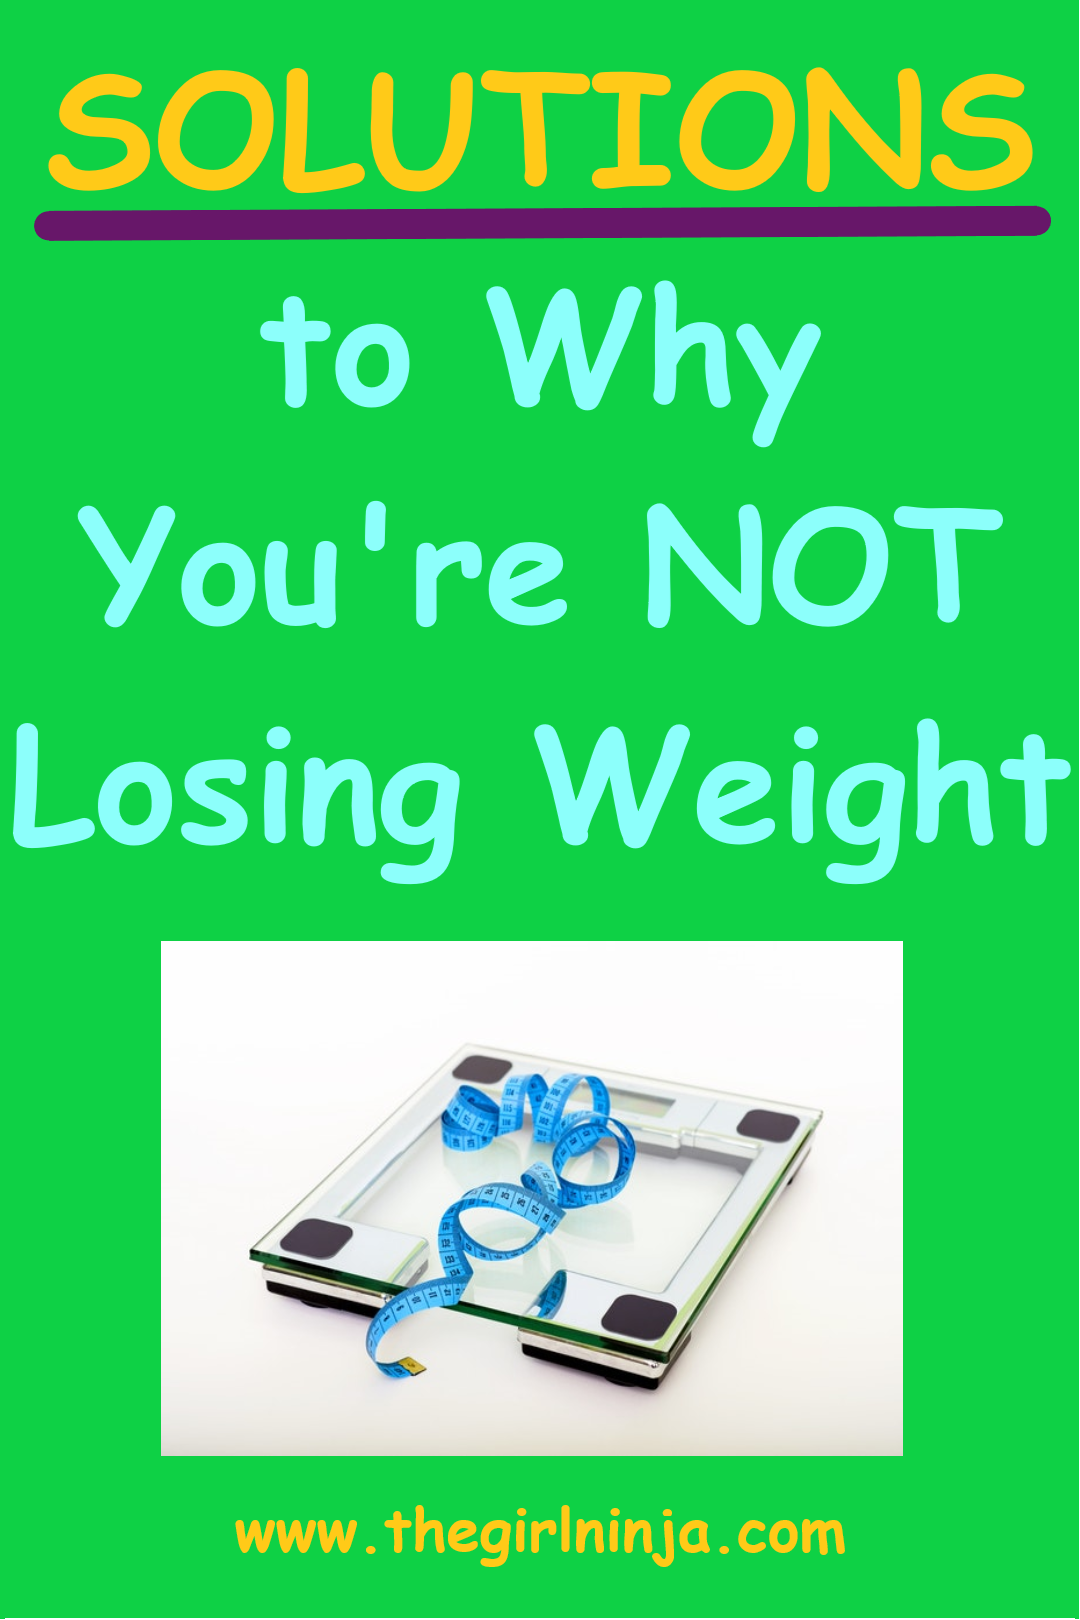 Green rectangle with the bright yellow and sky blue text that reads SOLUTIONS to why You're NOT Losing Weight. Image of a scale with a ribbon measurer scattered on top of it. At bottom center yellow text reads www.thegirlninja.com